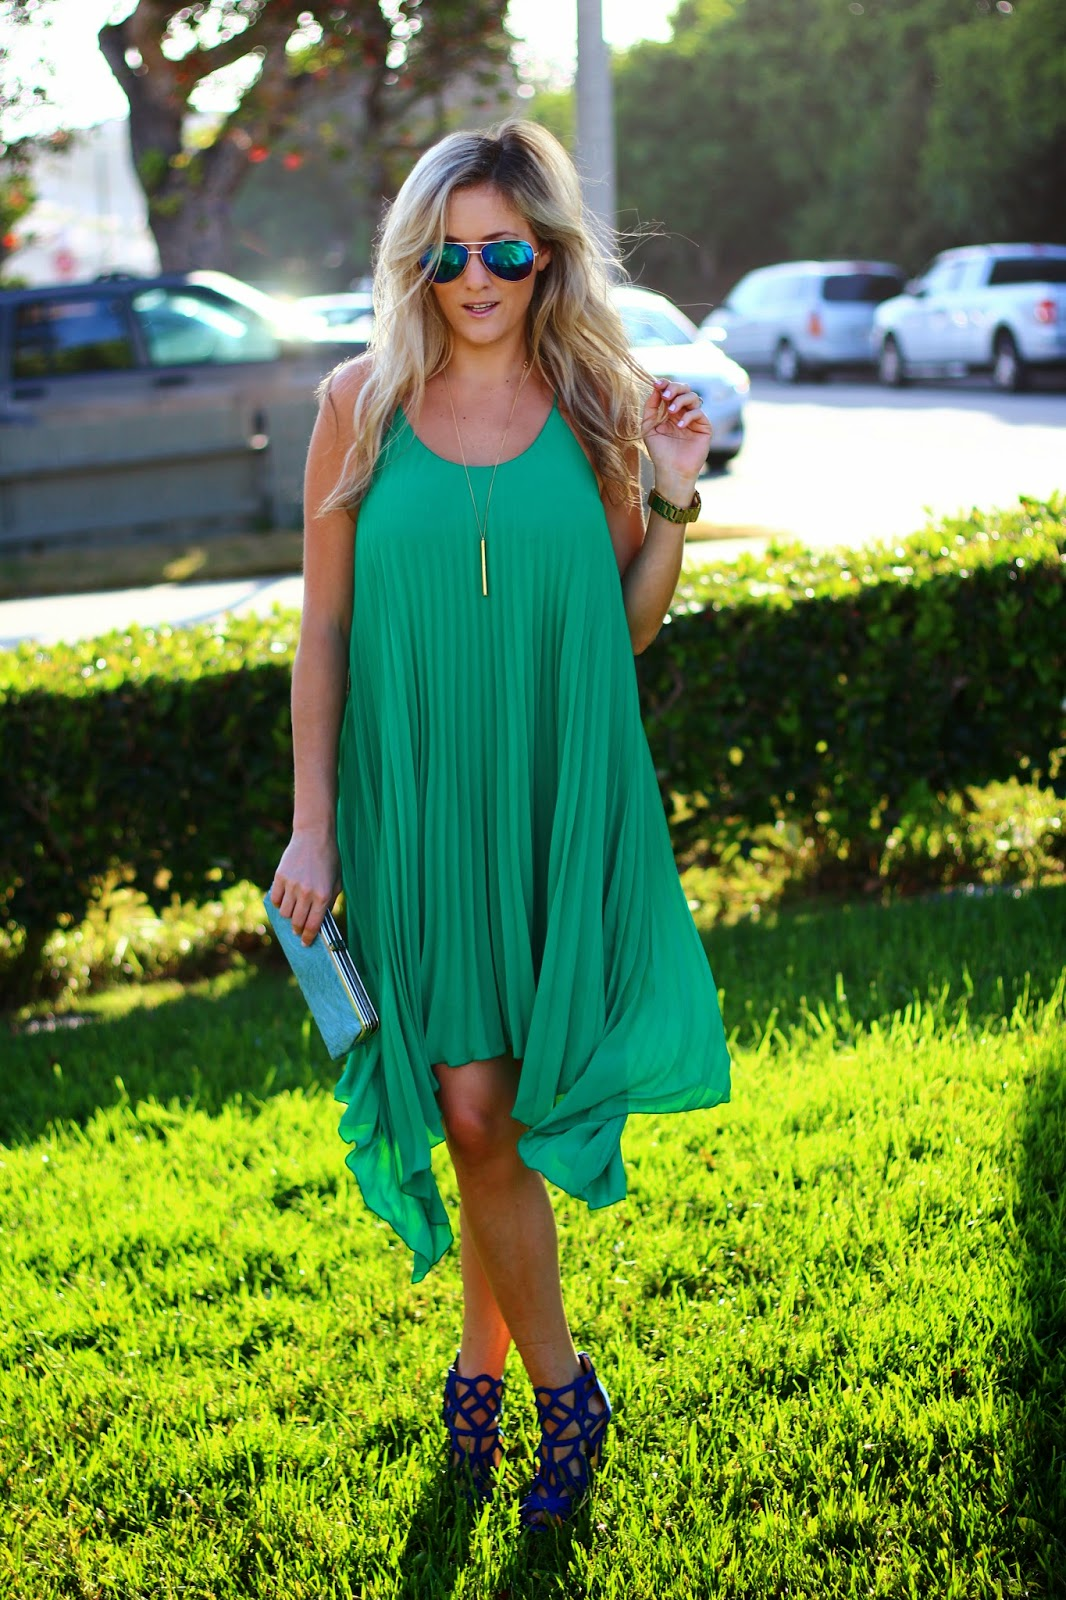 Wedding Guest Attire: Pleated Green Dress - She Said He Said